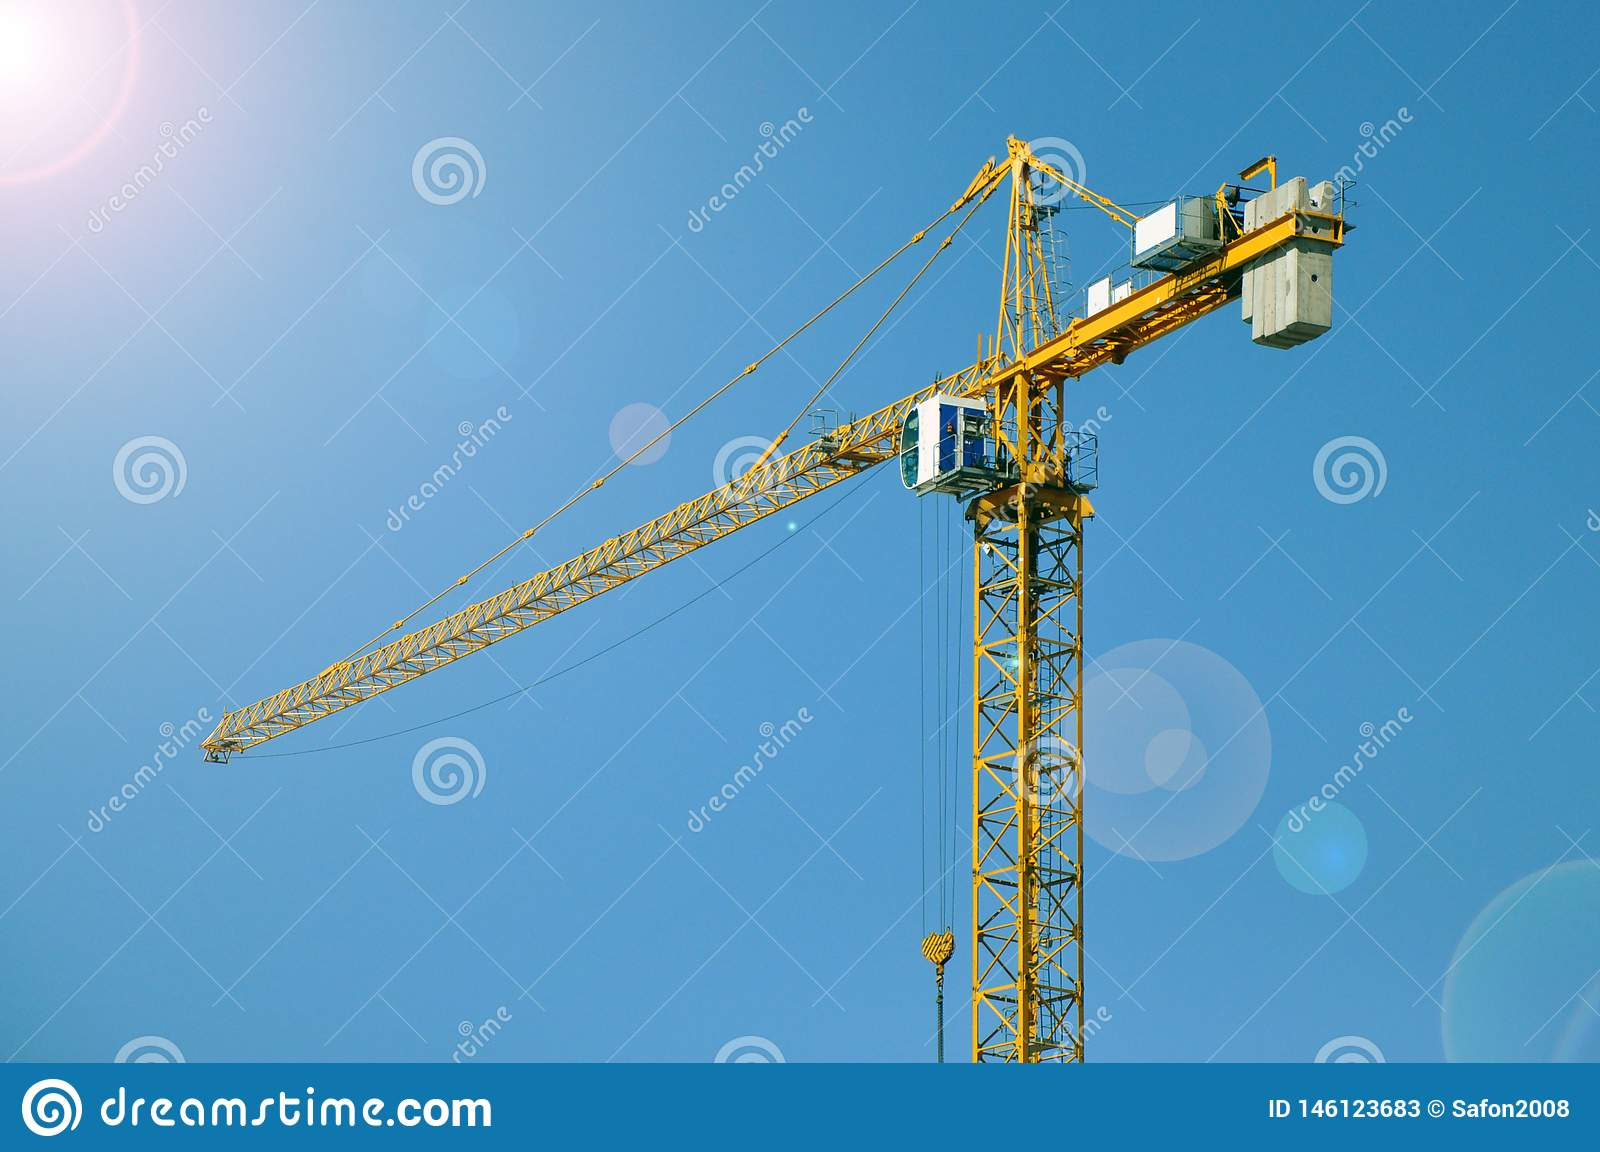 Lifting tower crane against the blue sky